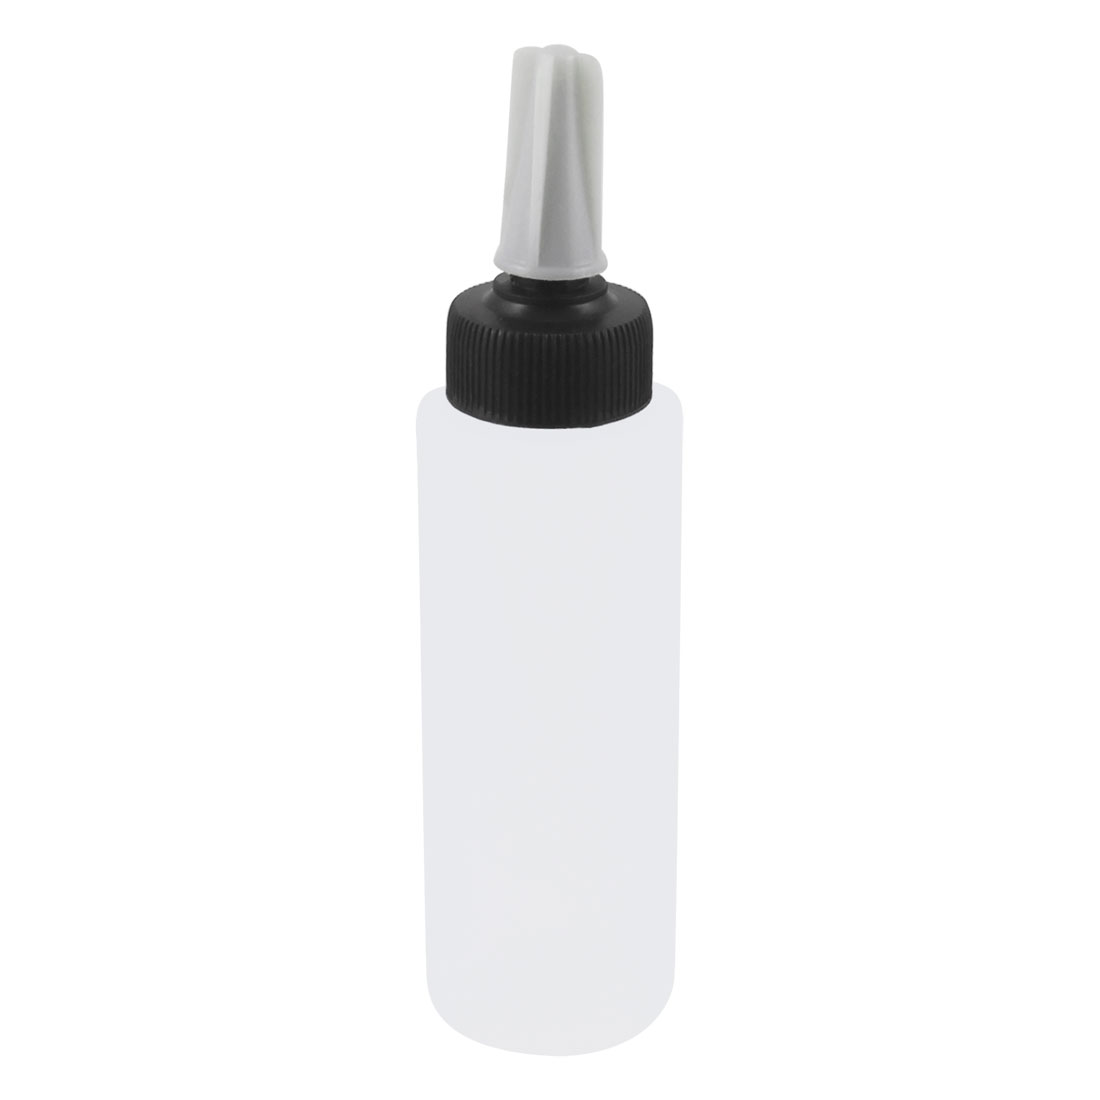 150ml 5OZ Cylinder Shape Clear White Plastic Water Holder Squeeze Bottle